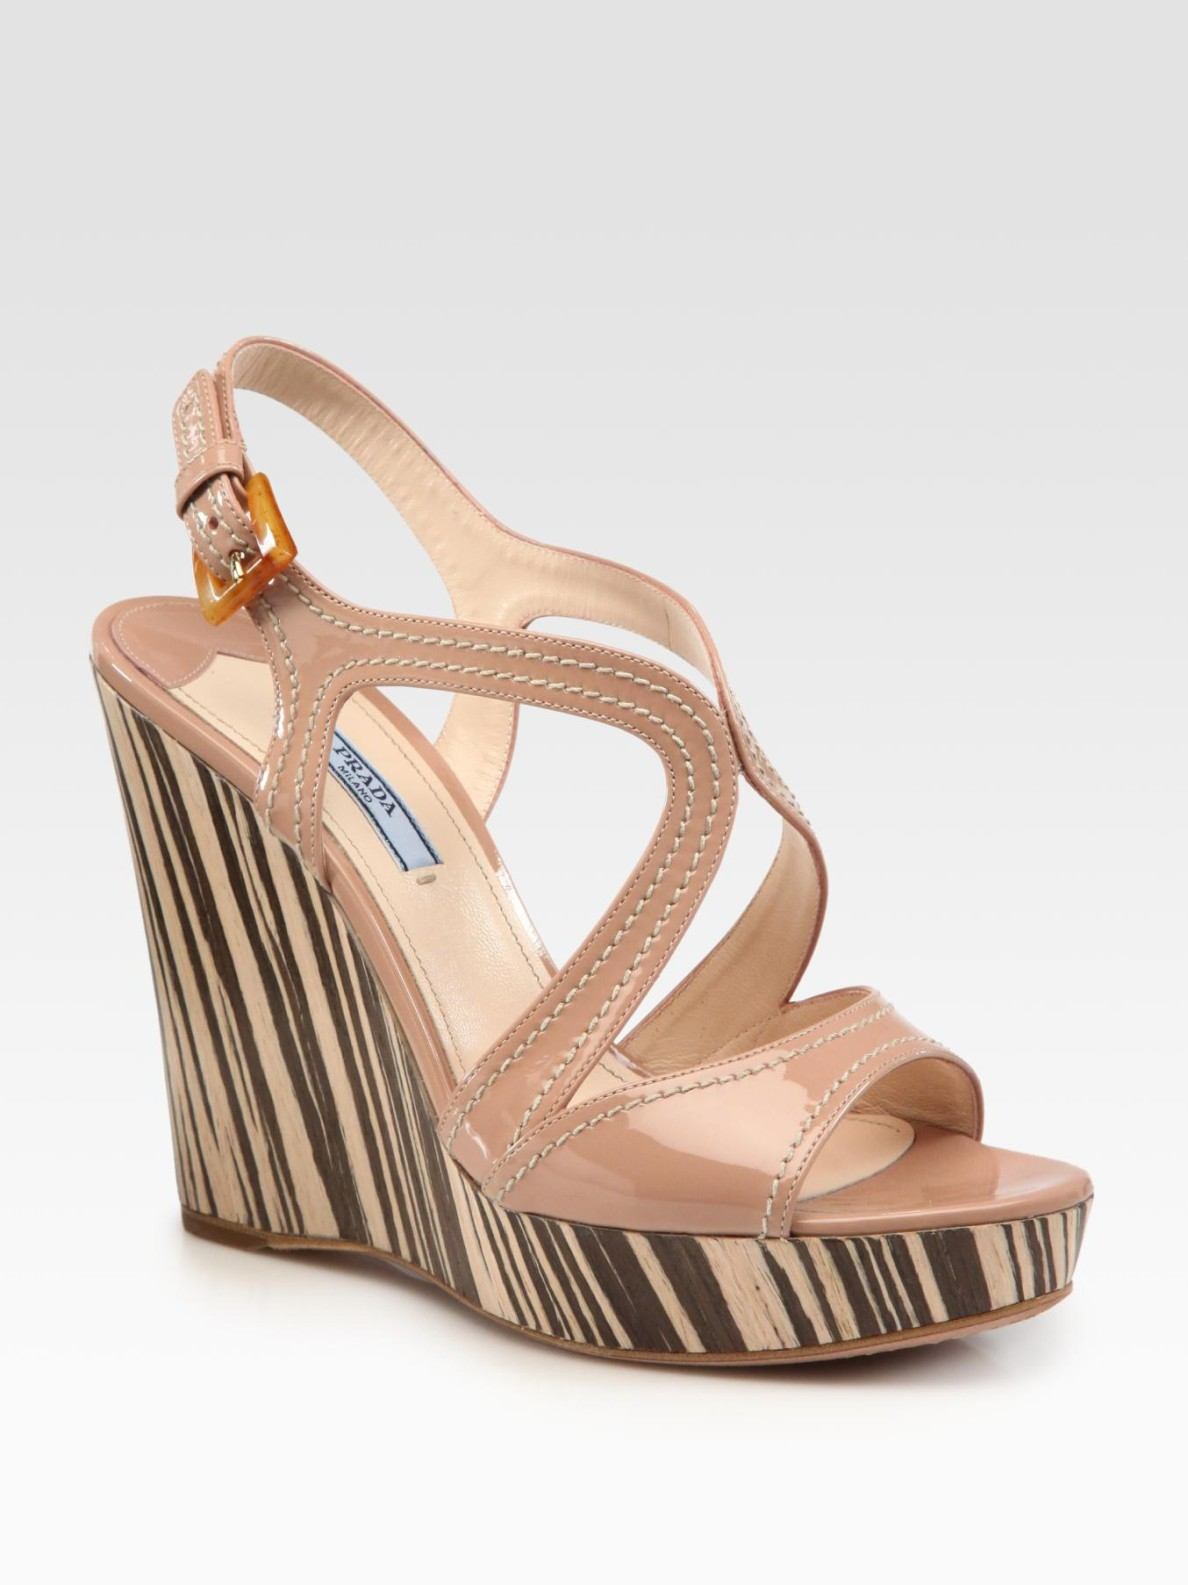 6d0c271a3bb Lyst - Prada Patent Leather and Wood Multistrap Wedge Sandals in Pink